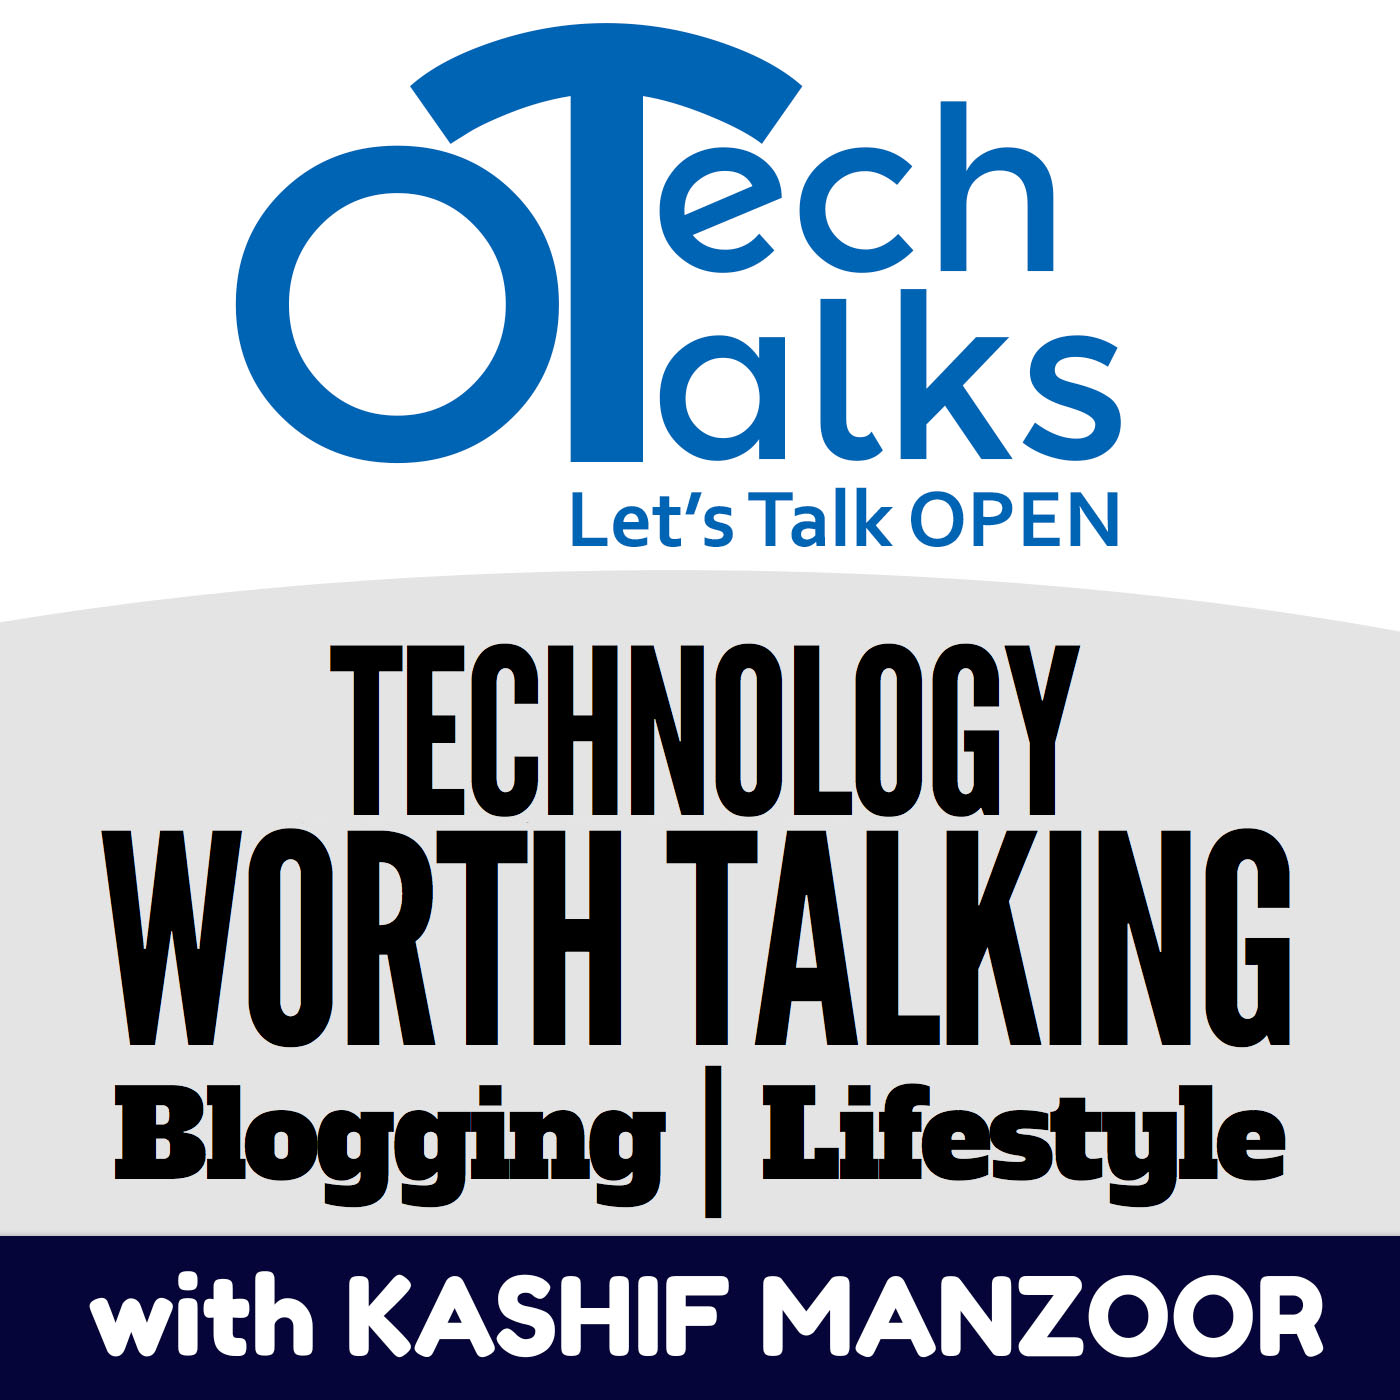 OTech Talks : Oracle Technology worth Talking| Blogging |Lifestyle